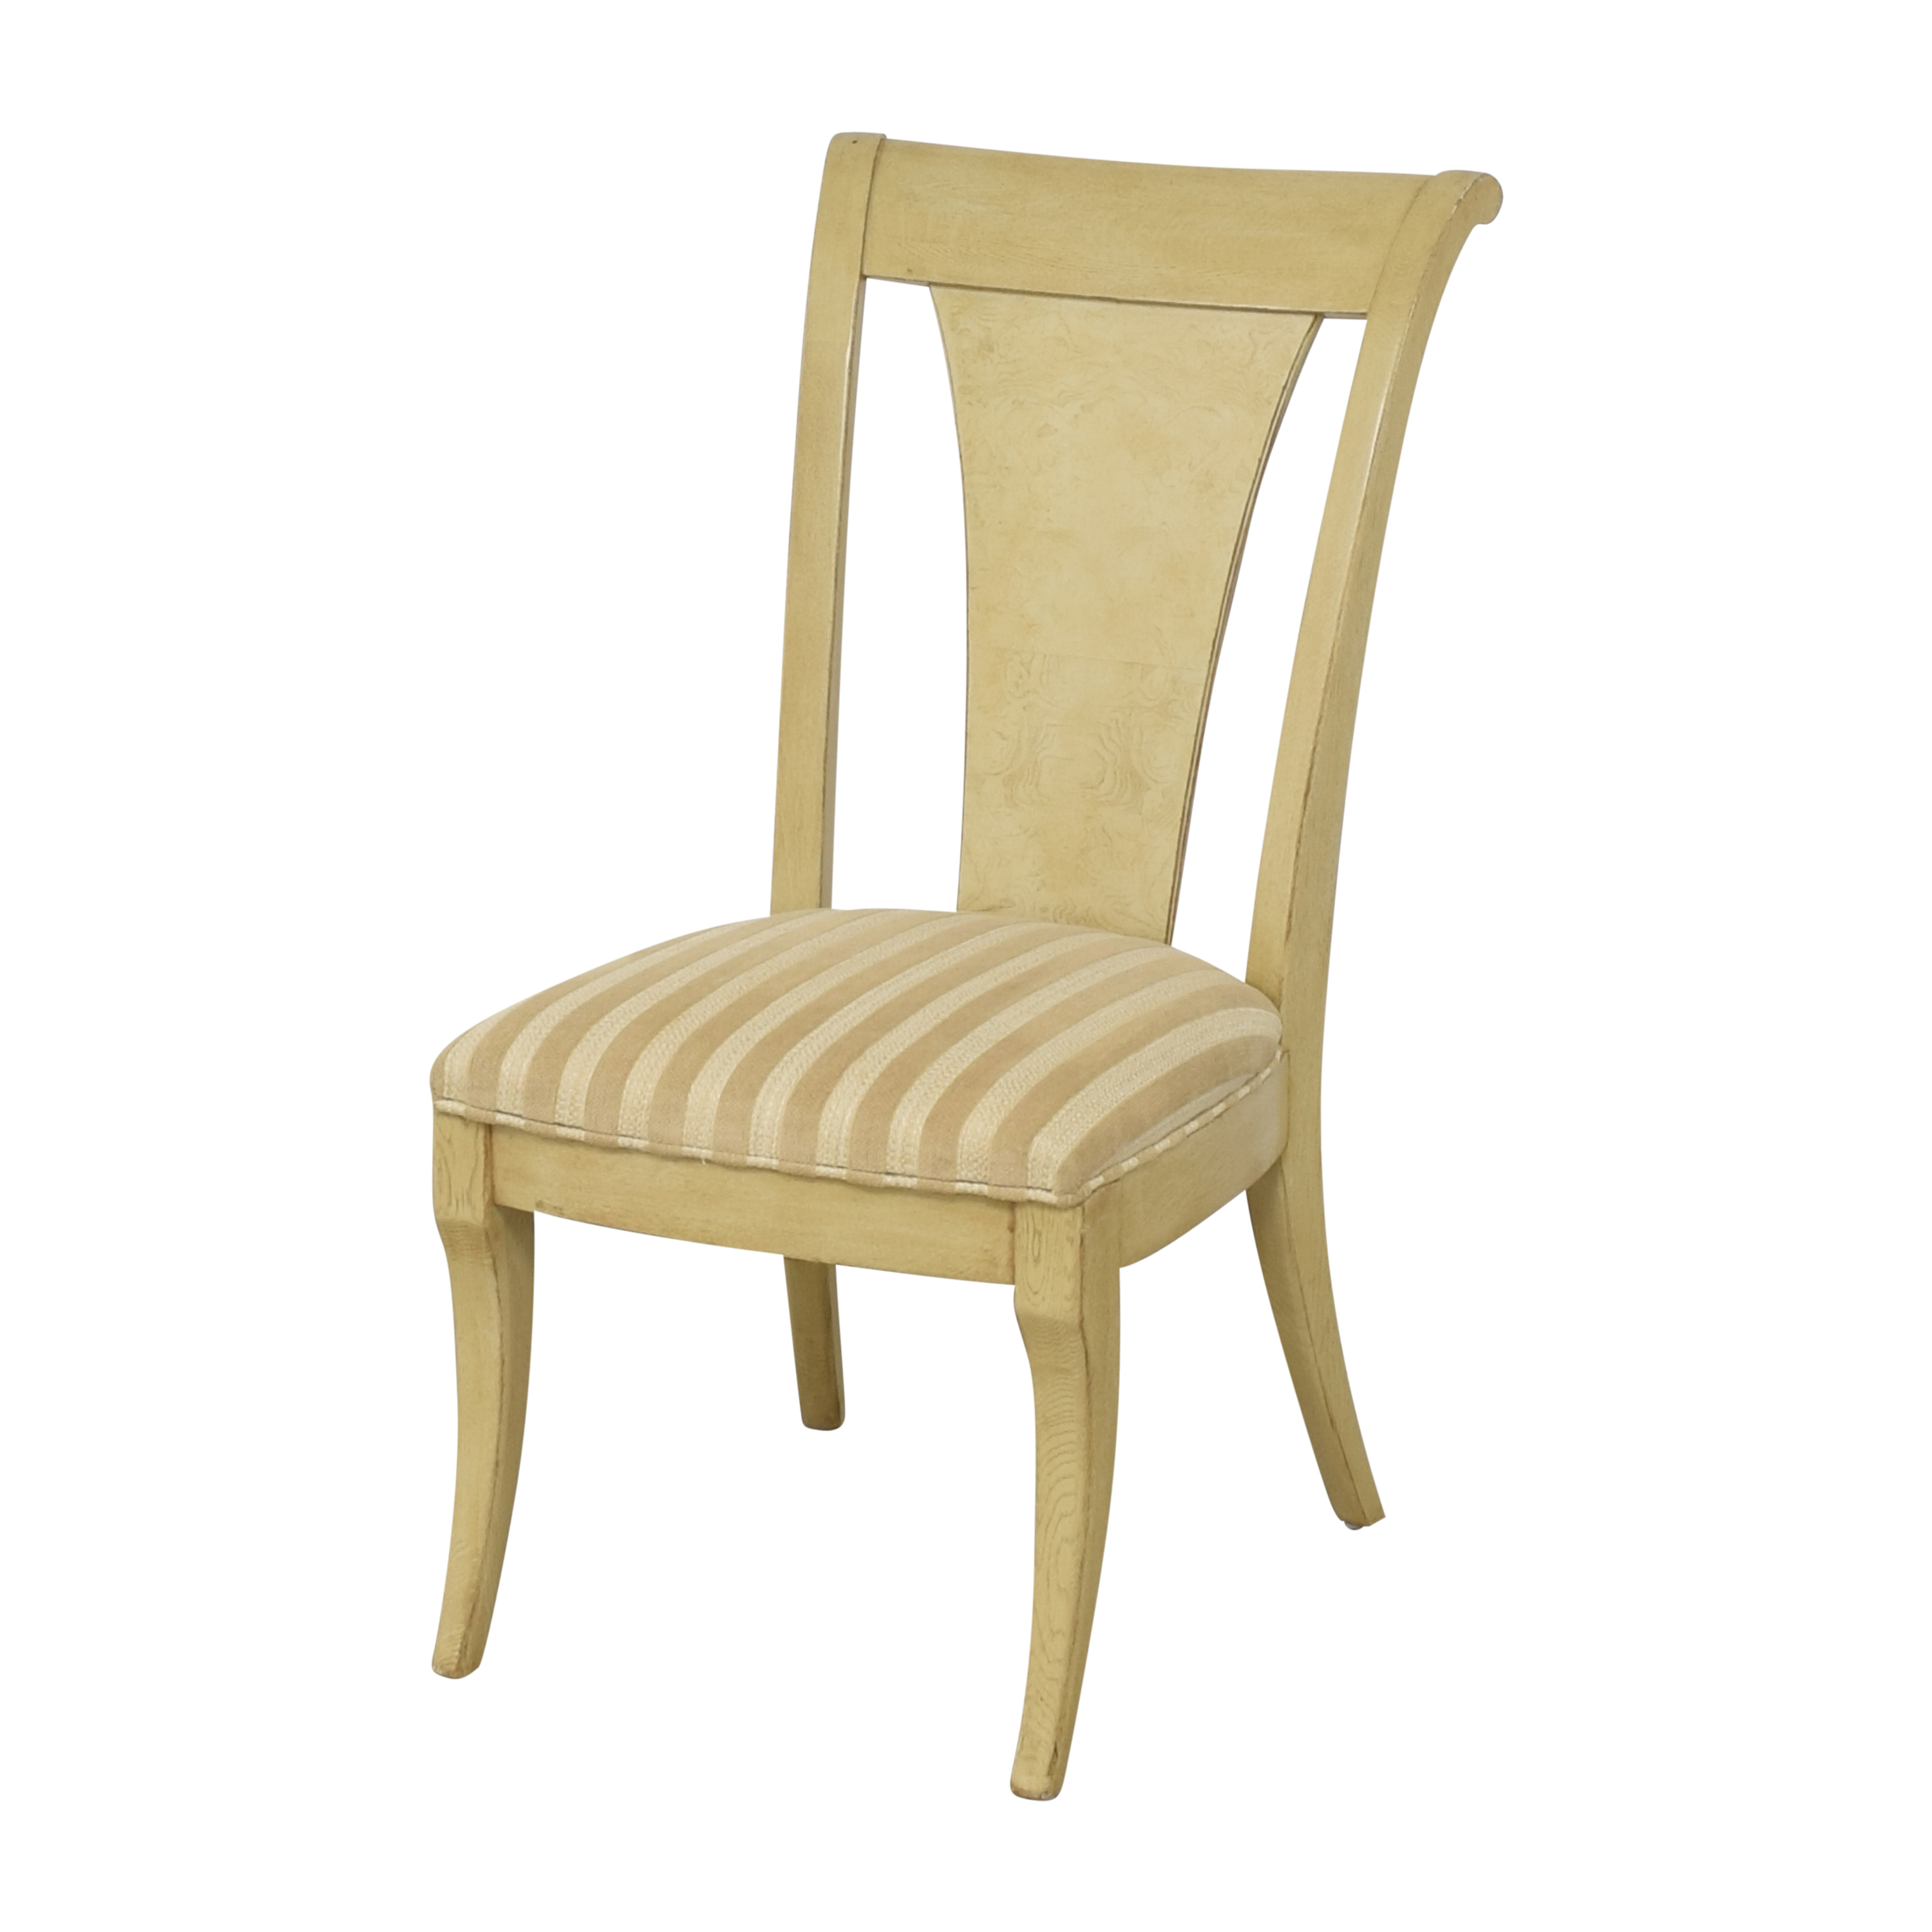 Drexel Heritage Drexel Heritage Insignia Dining Chairs second hand